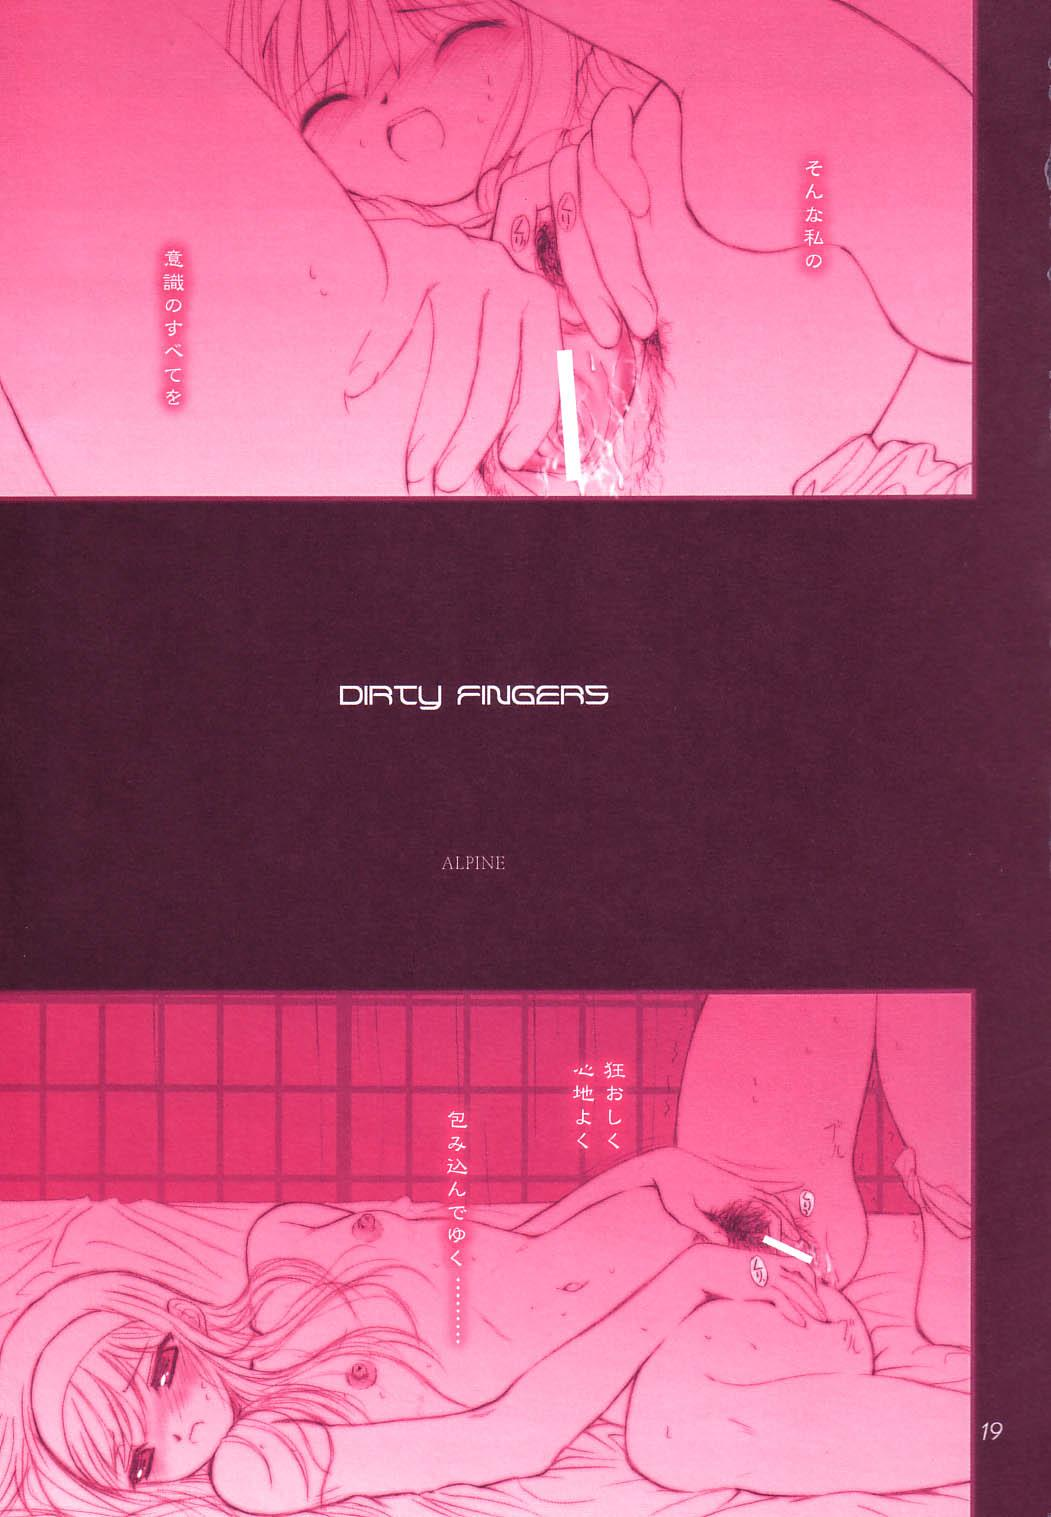 DIRTY FINGERS 19